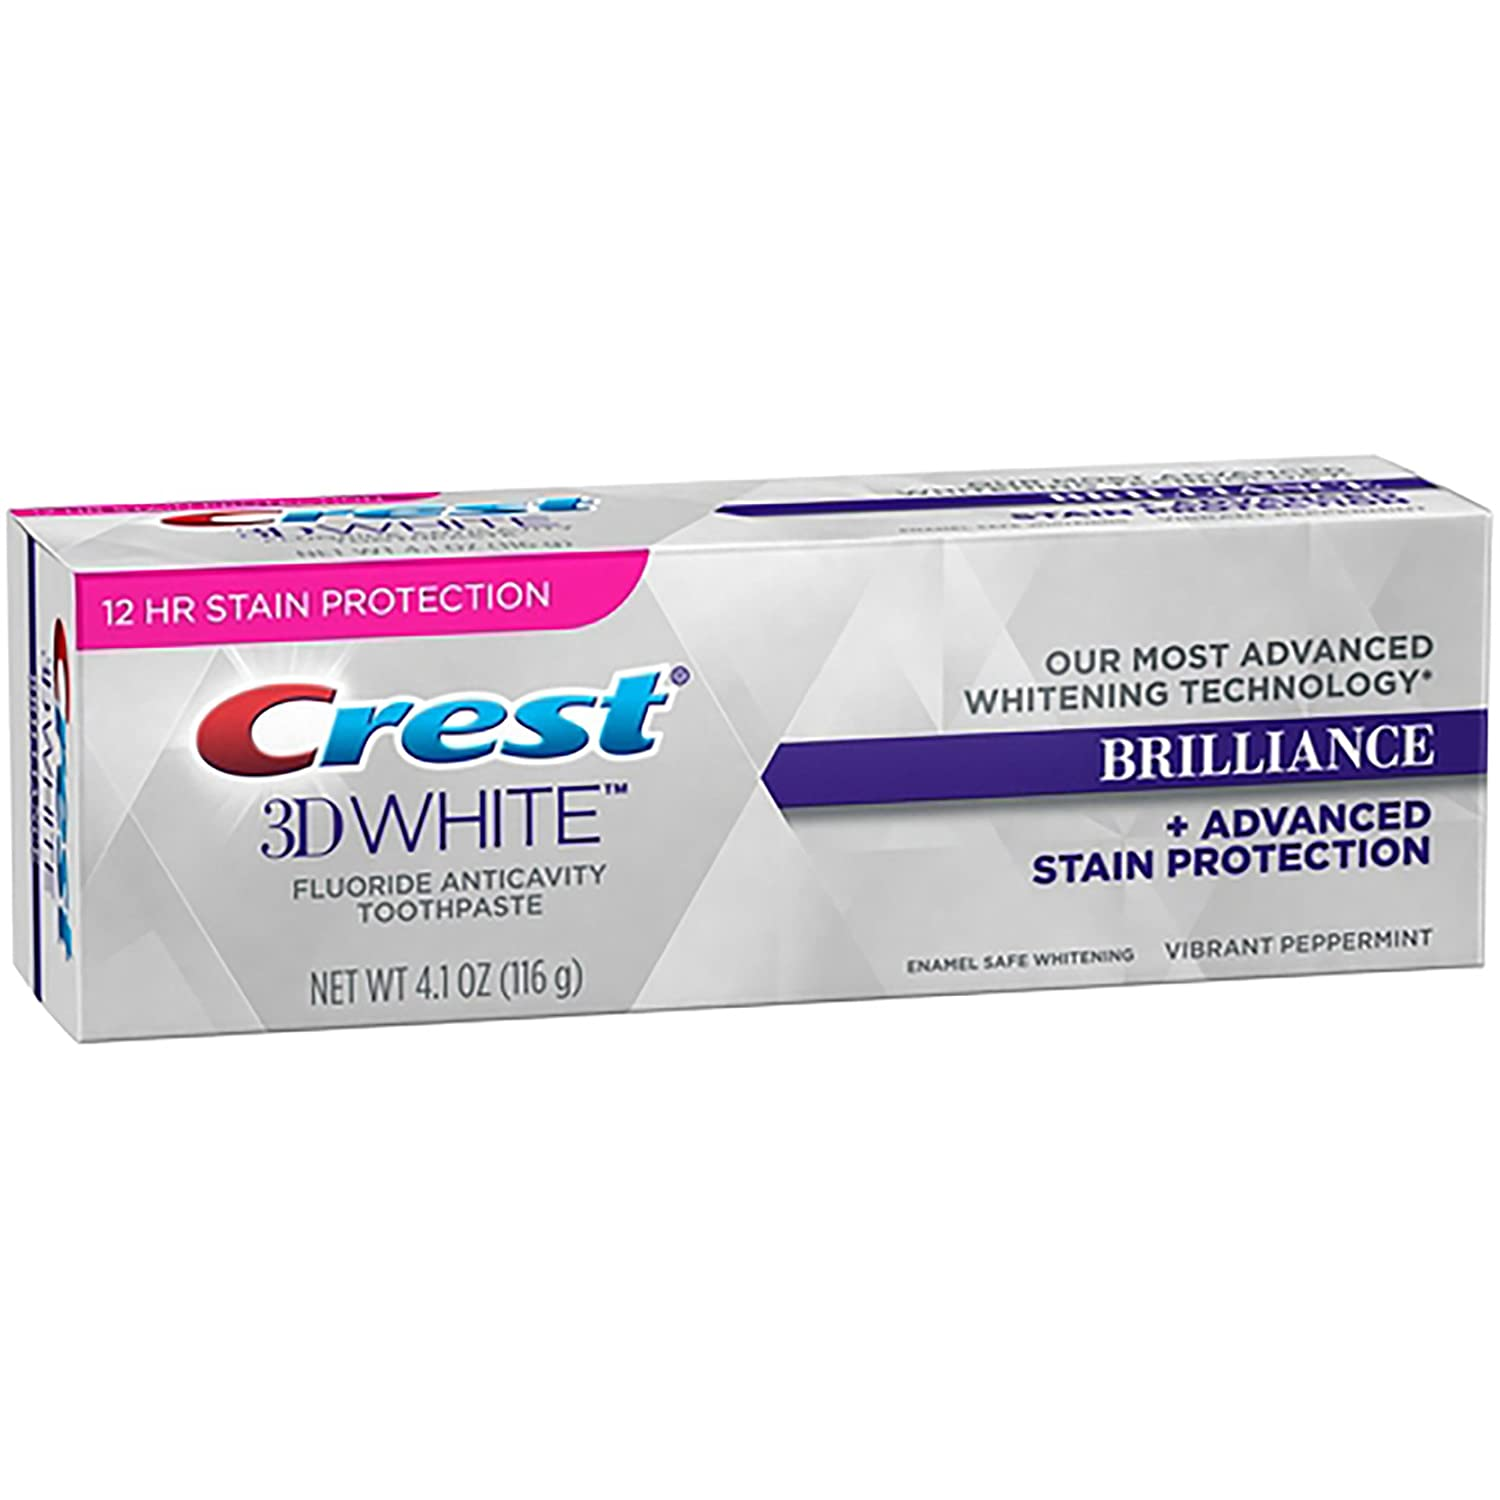 Crest 3D White Brilliance + Advanced Stain protection Vibrant Pepermint 4.1oz